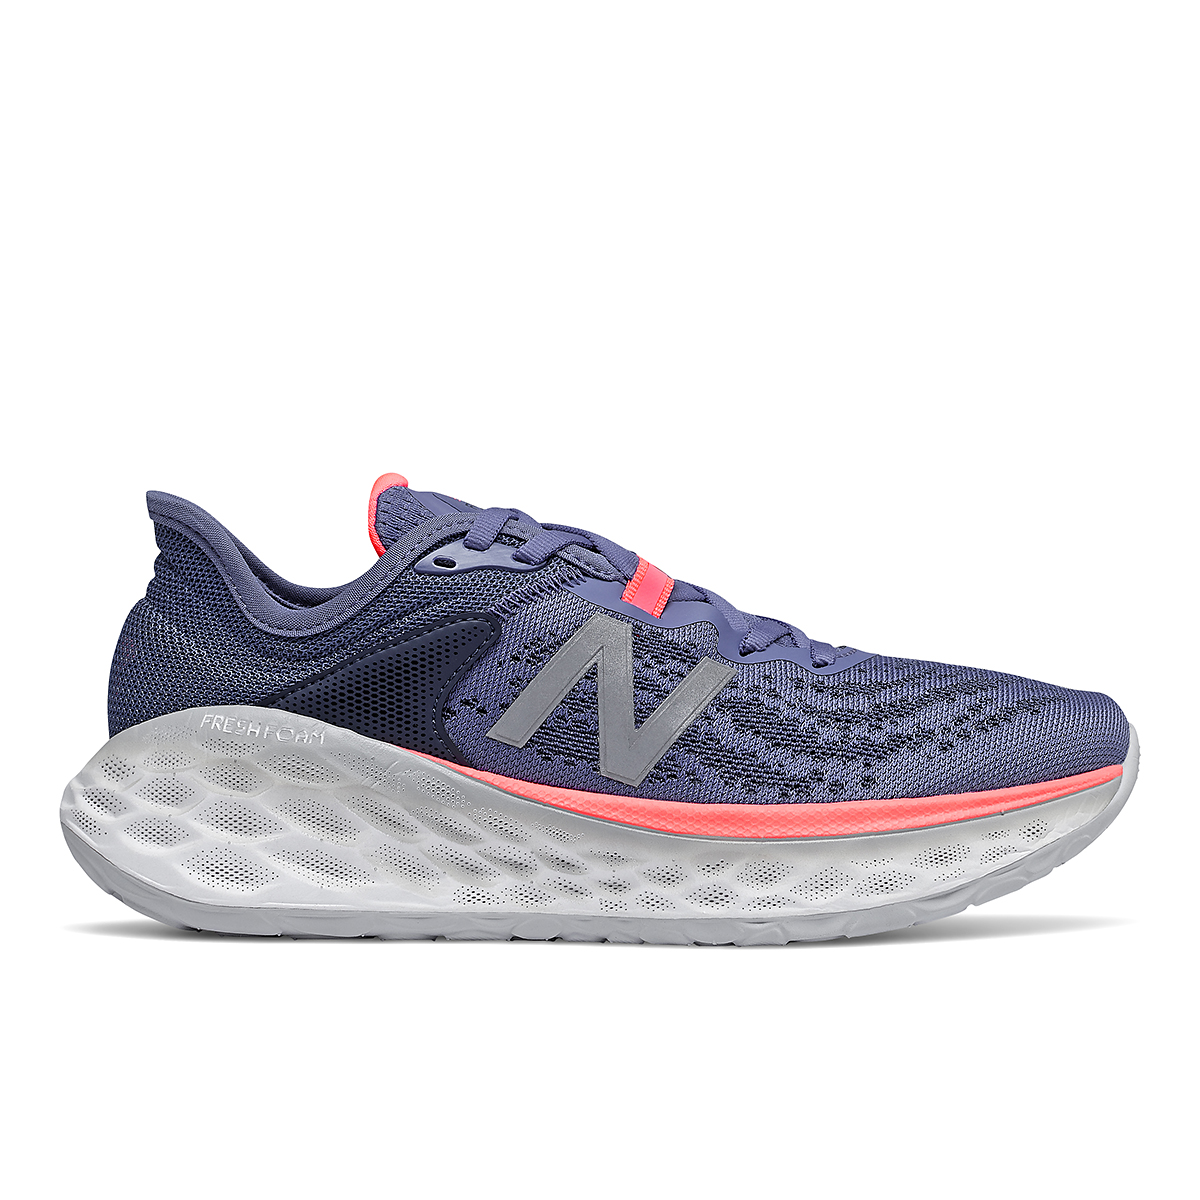 Women's New Balance Fresh Foam More V2 Running Shoe - Color: Magnetic Blue - Size: 5 - Width: Extra Wide, Magnetic Blue, large, image 1